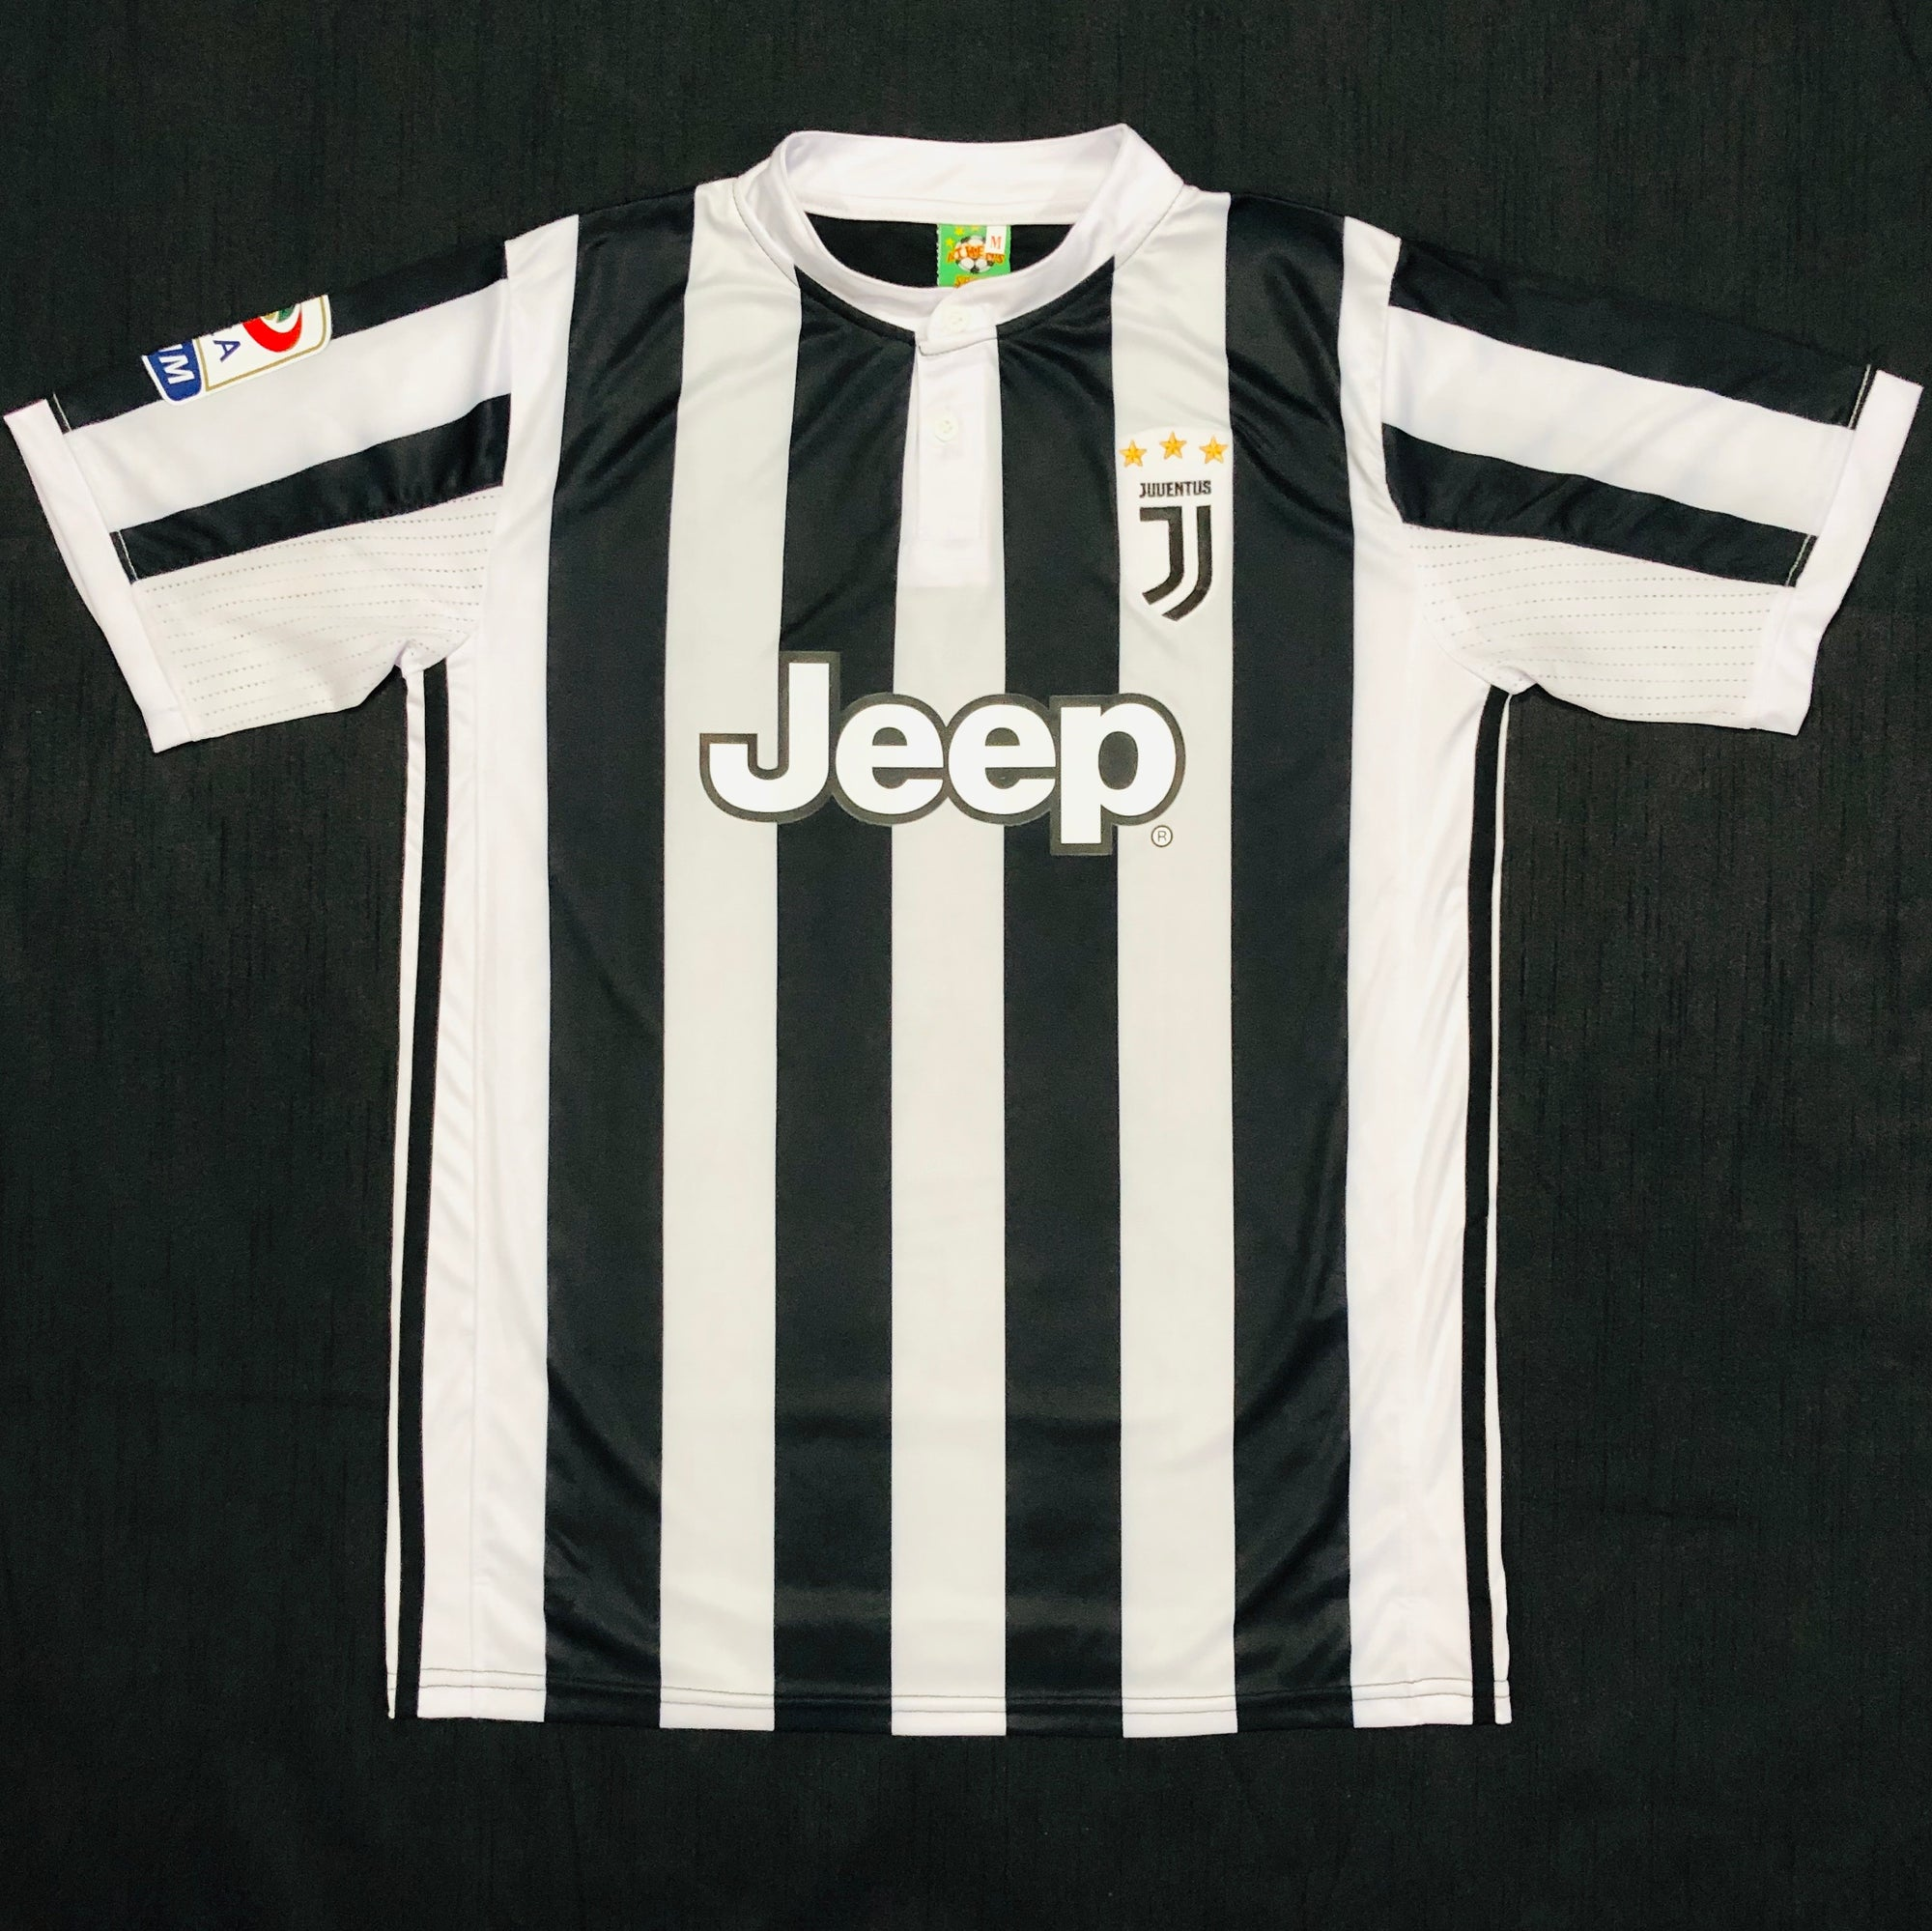 Juventus Home 2017/18 Adult Shirt ~ Replica Version